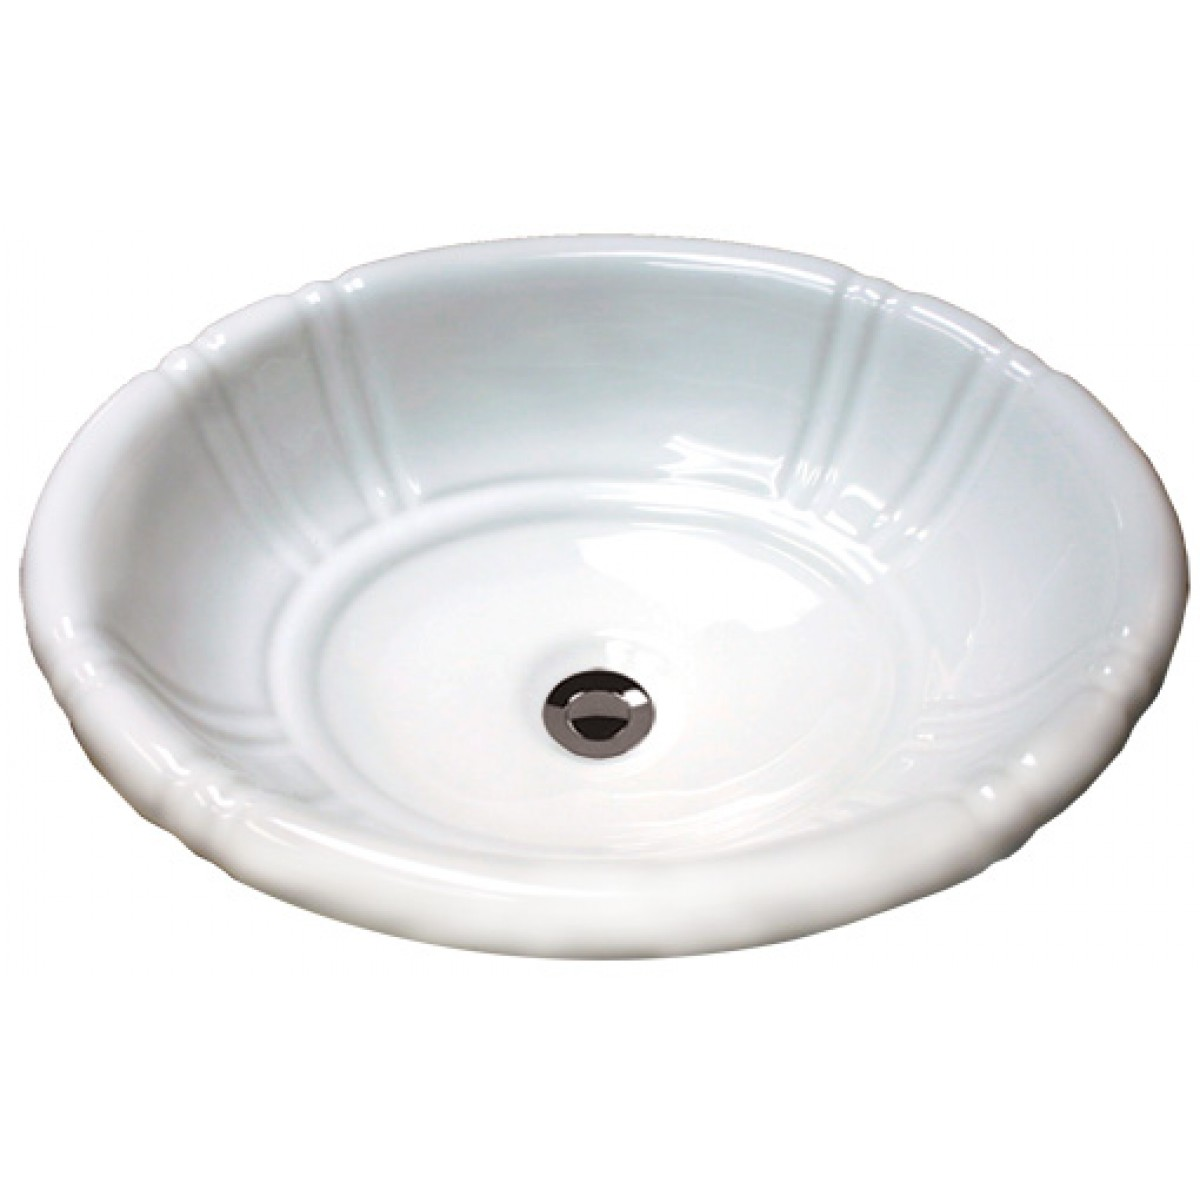 ... Ceramic Vanity Drop In Bathroom Vessel Sink - 18 x 15-1/2 x 6-1/4 Inch